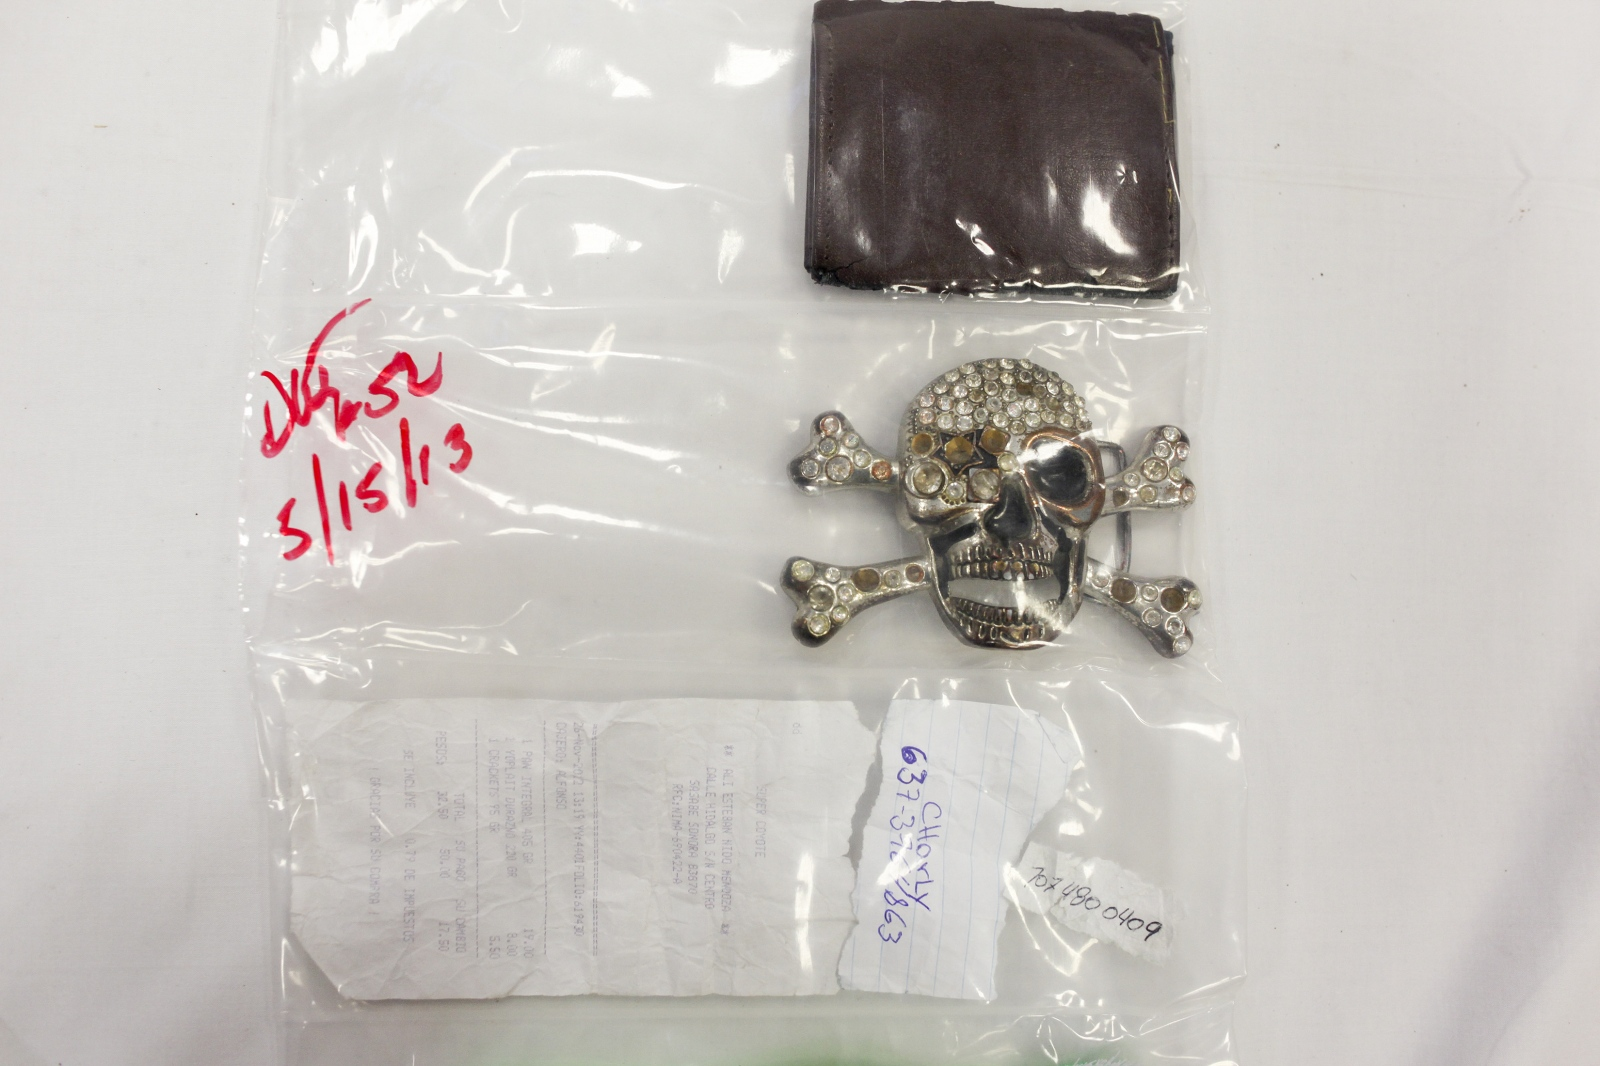 Belongings of an unidentified migrant border crosser are seen in a plastic sleeve displayed on a white sheet at the Pima County Office of the Medical Examiner on May 22, 2013, in Tucson, Ariz.  All remains, including the objects, are held for six to eight months and then cremated. The sheer volume of cases prevents the medical examiner from holding on any longer.  Each new item is carefully studied by Reineke and others from the medical examiner's office as they look for any clue to track down the families.